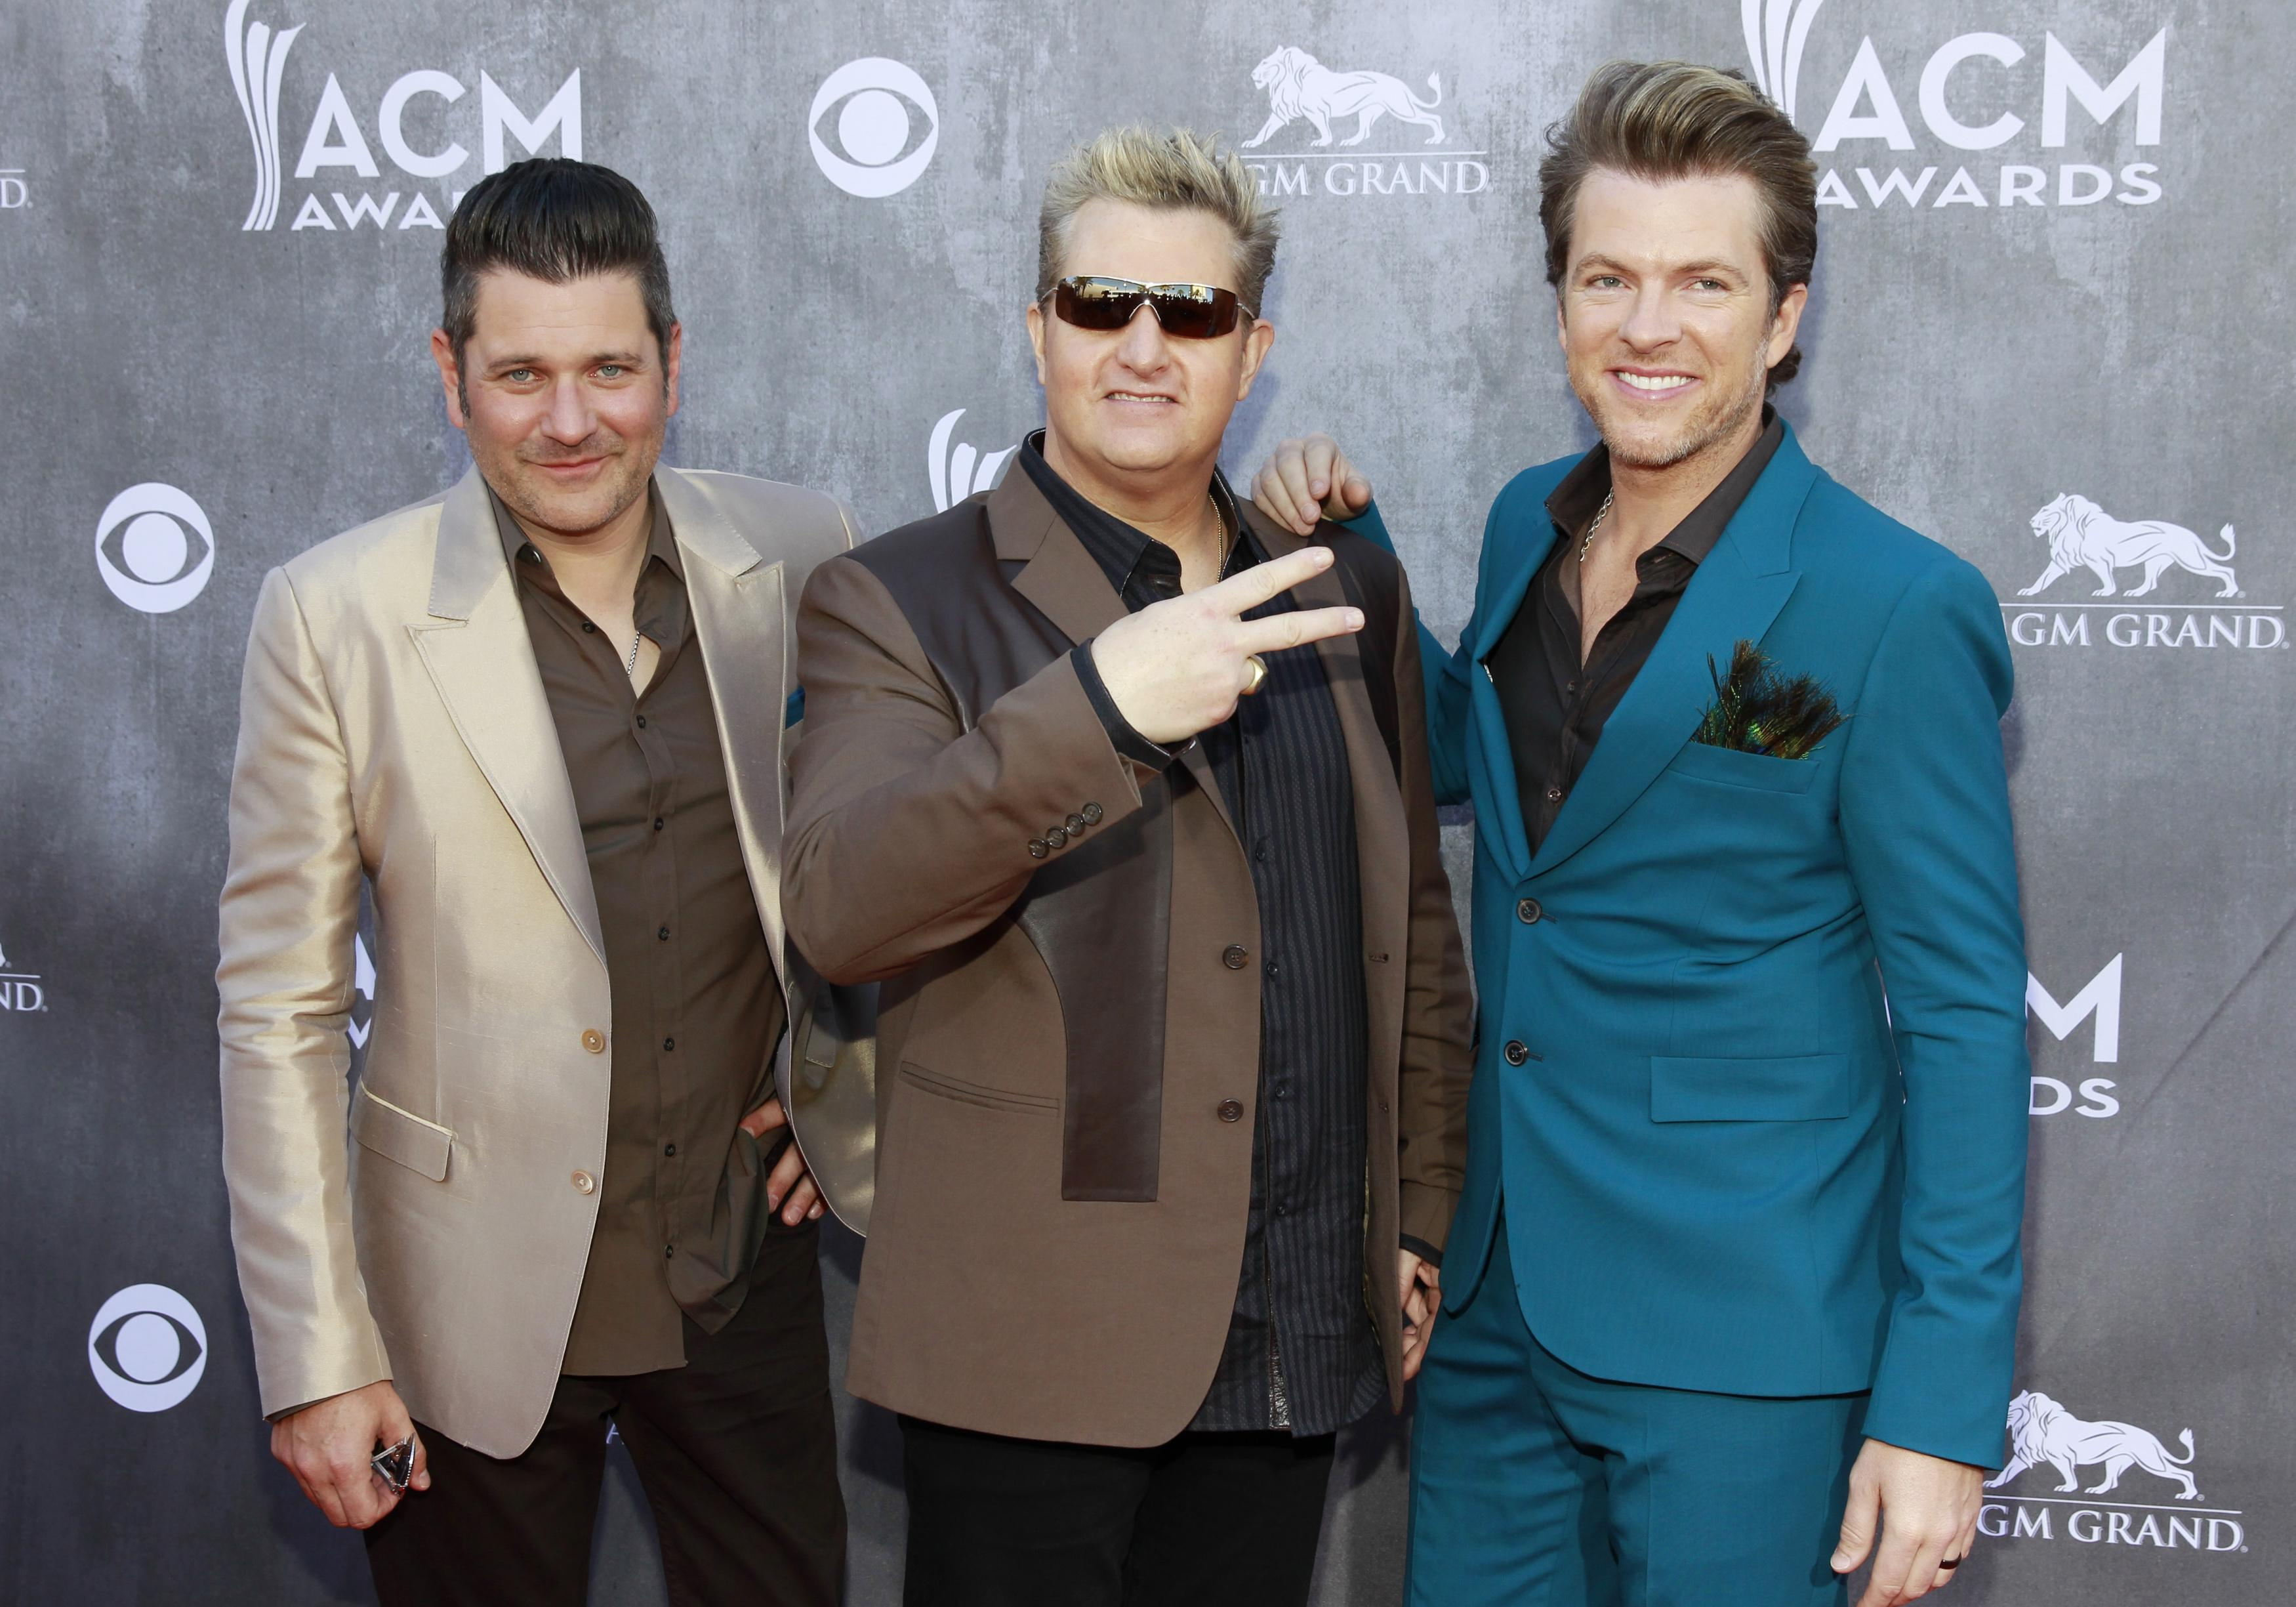 Rascal Flatts will go on a farewell tour after 20 years together